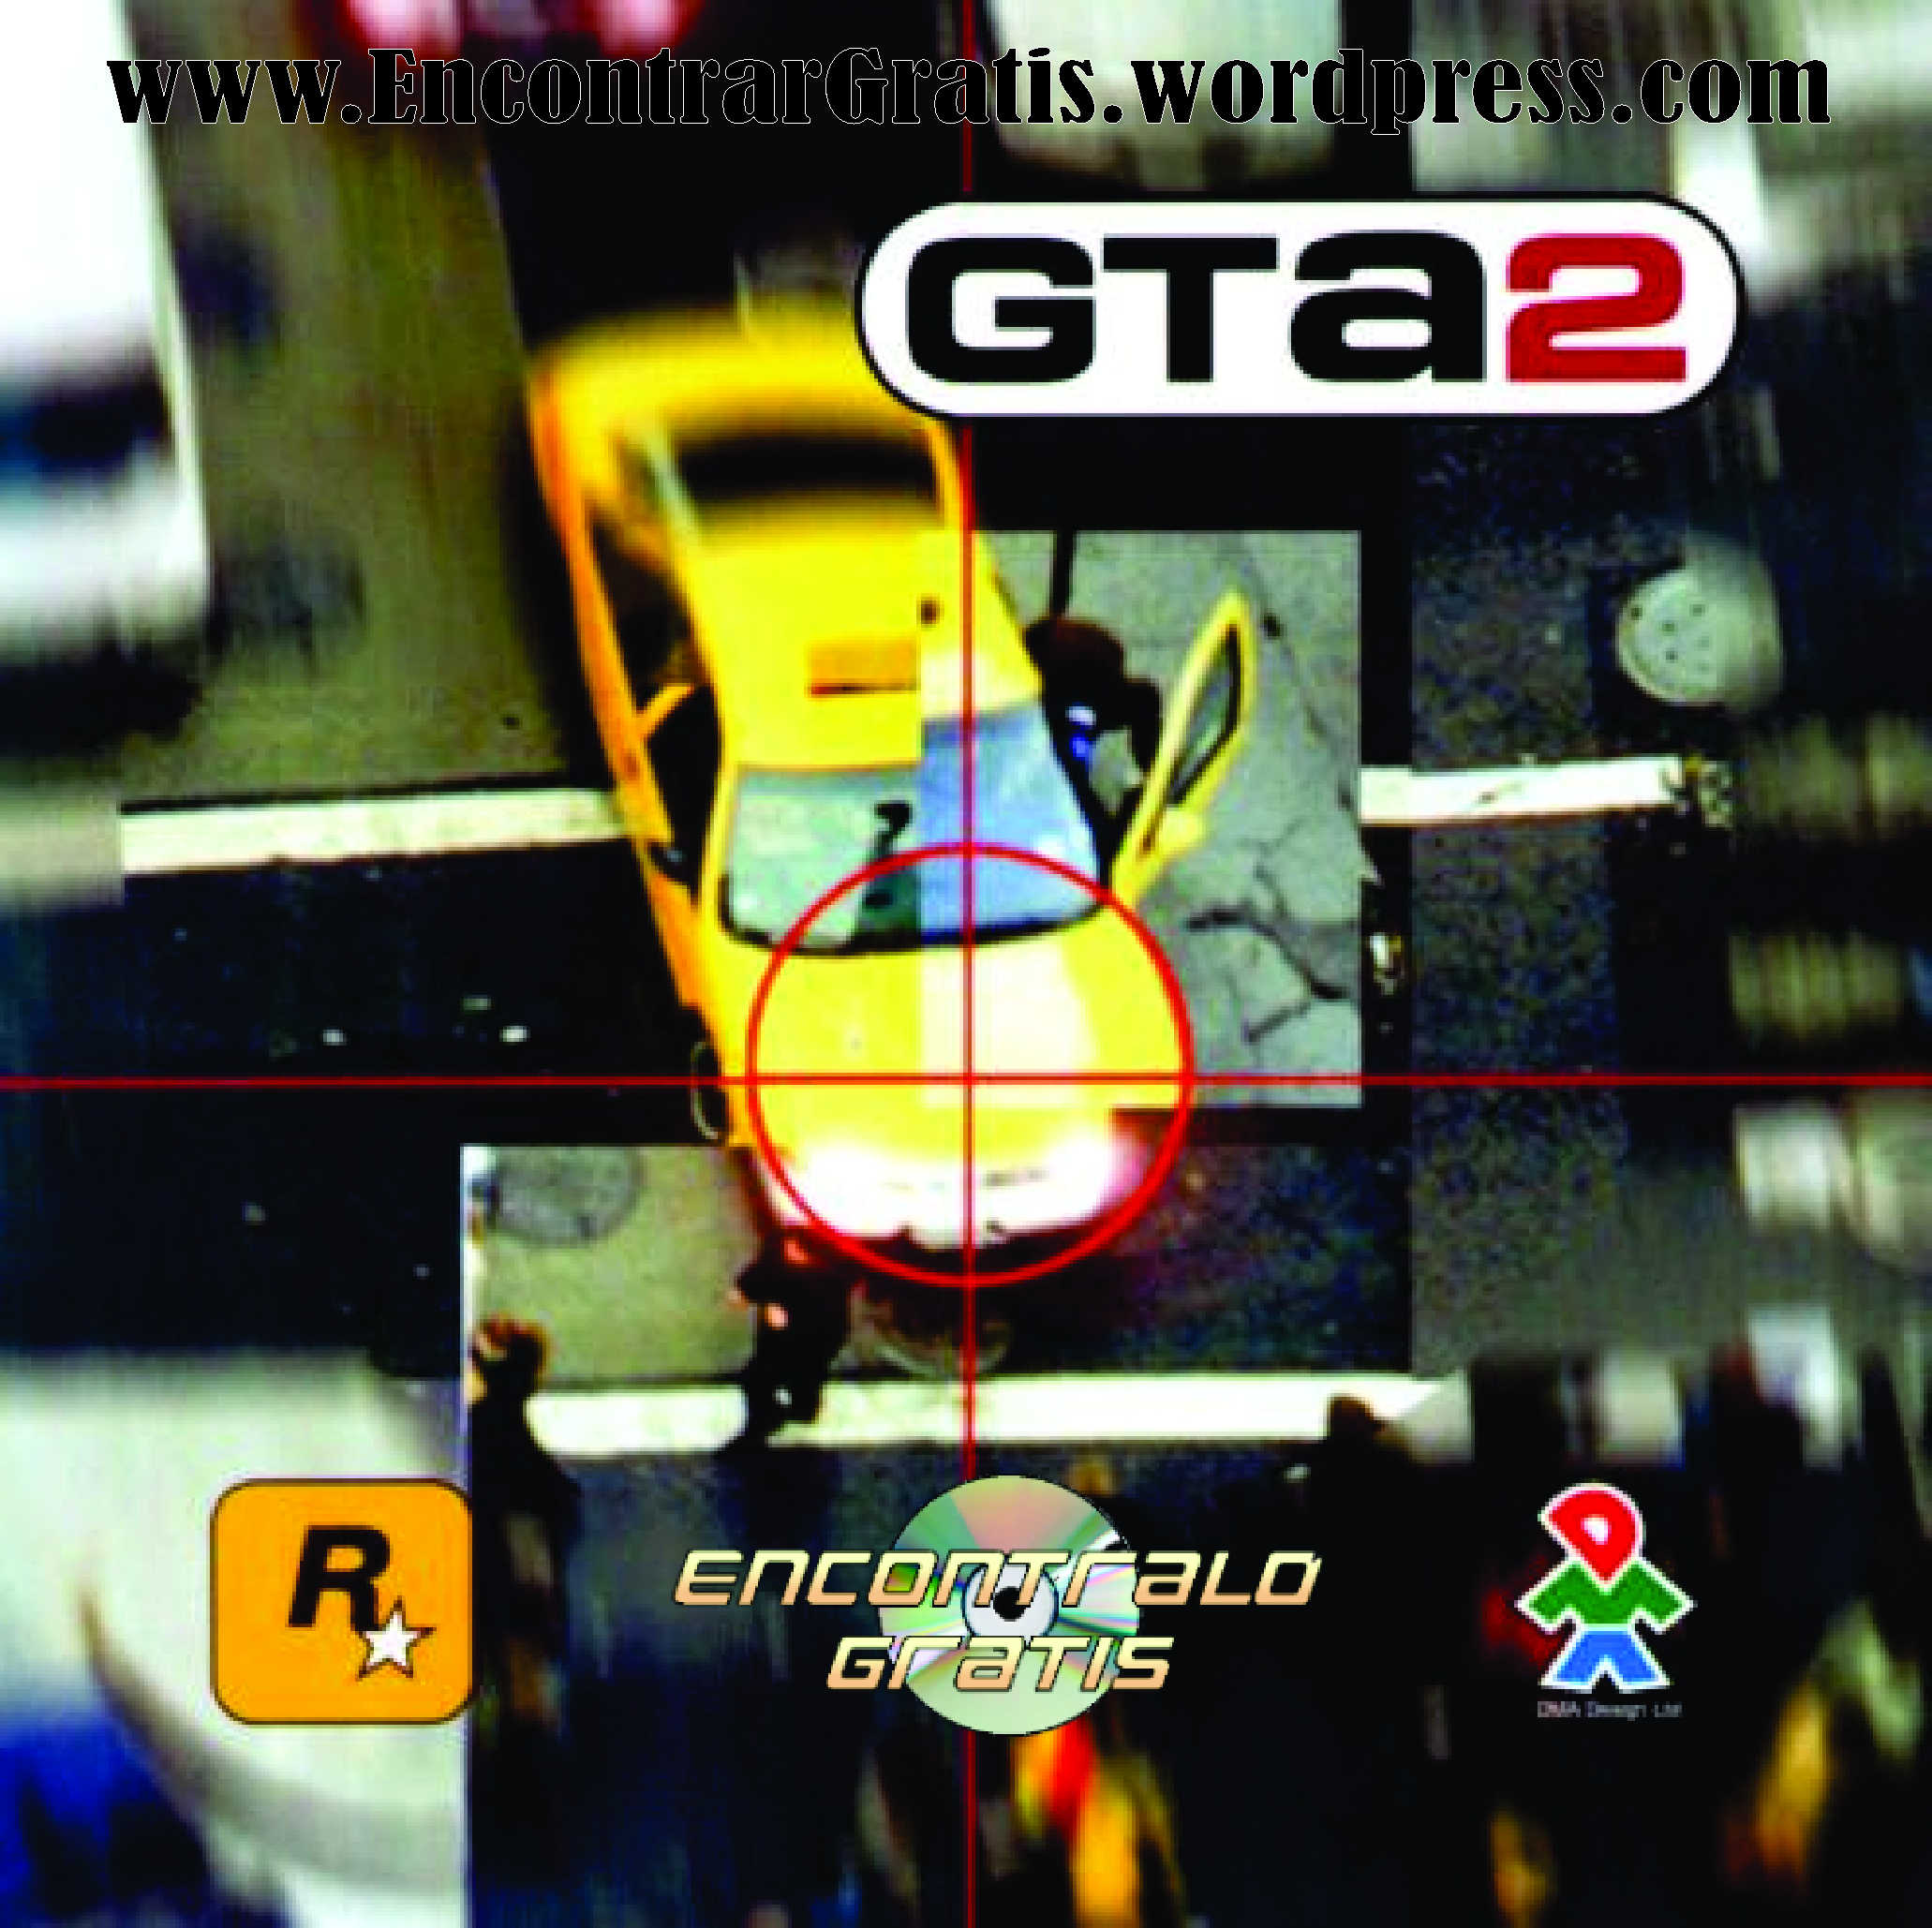 bajar gta 2 full grand theft auto